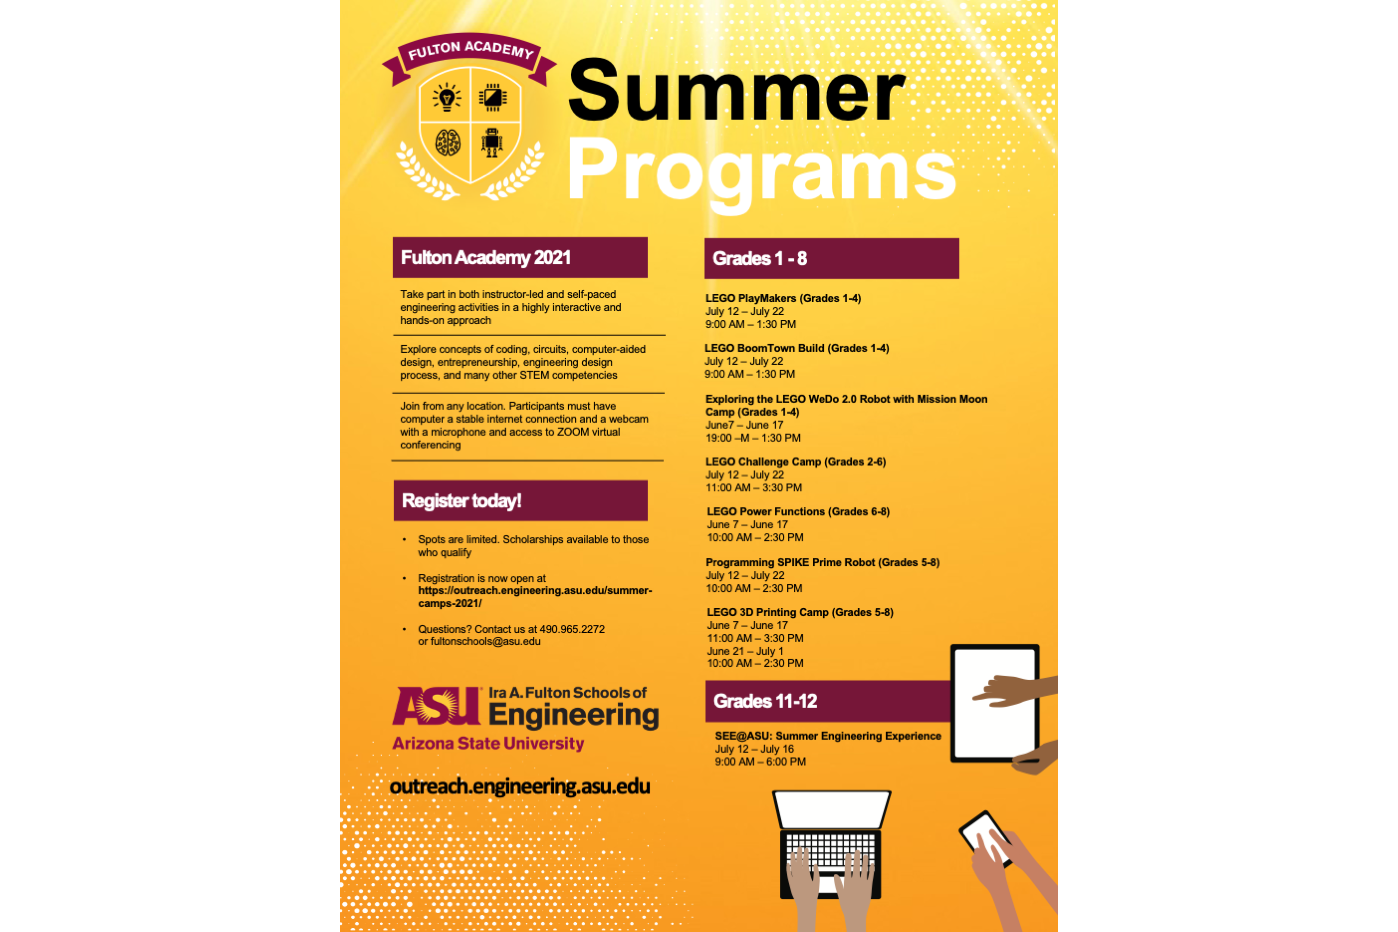 Listing of Fulton Academy 2021 summer camps for kids - see listing online at https://outreach.engineering.asu.edu/summer-camps-2021/